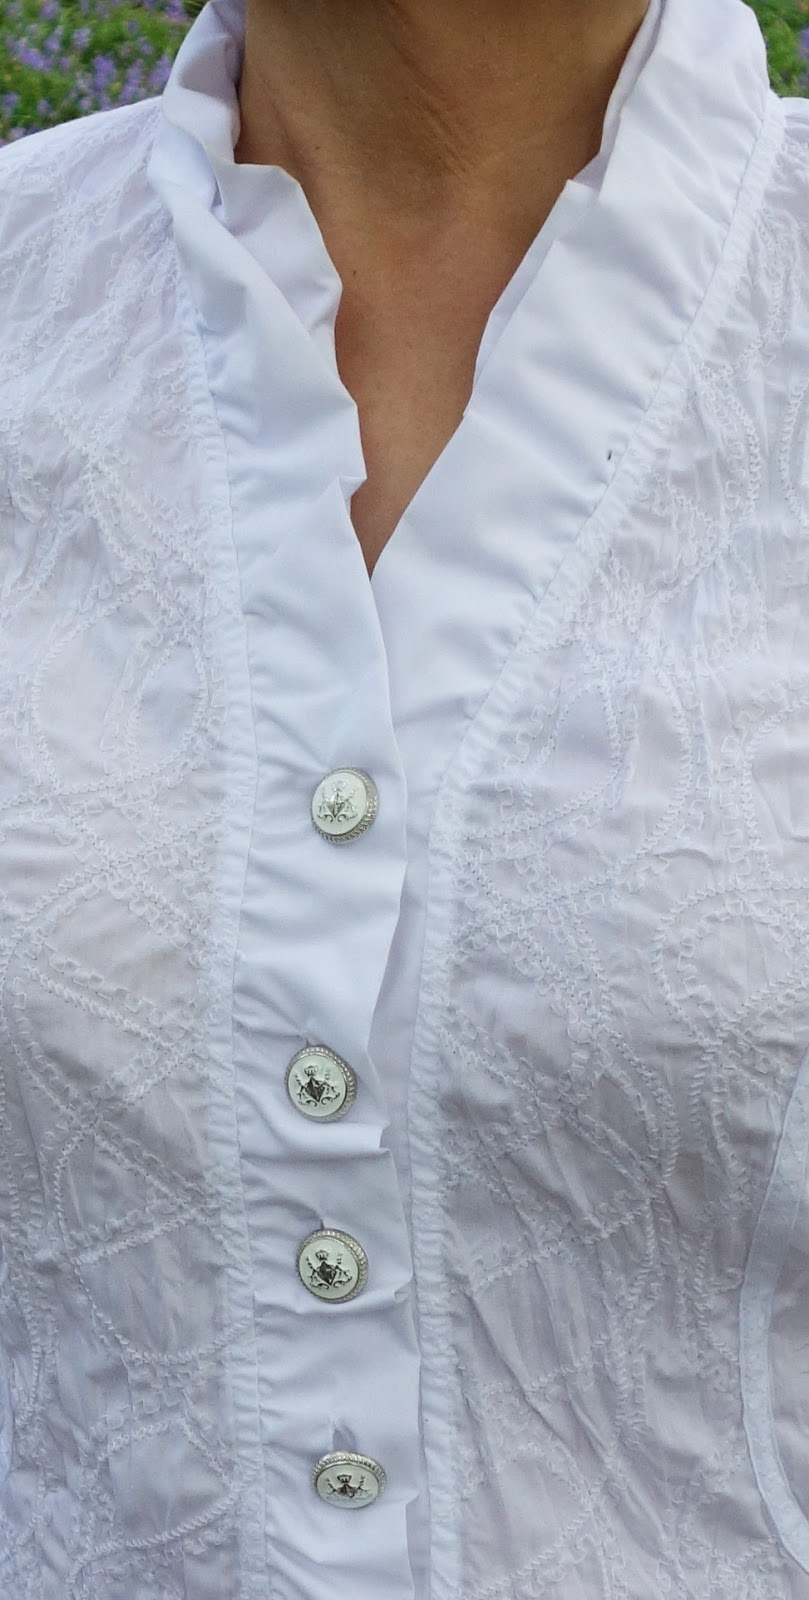 Close-up of button detail on white Peter Hahn blouse